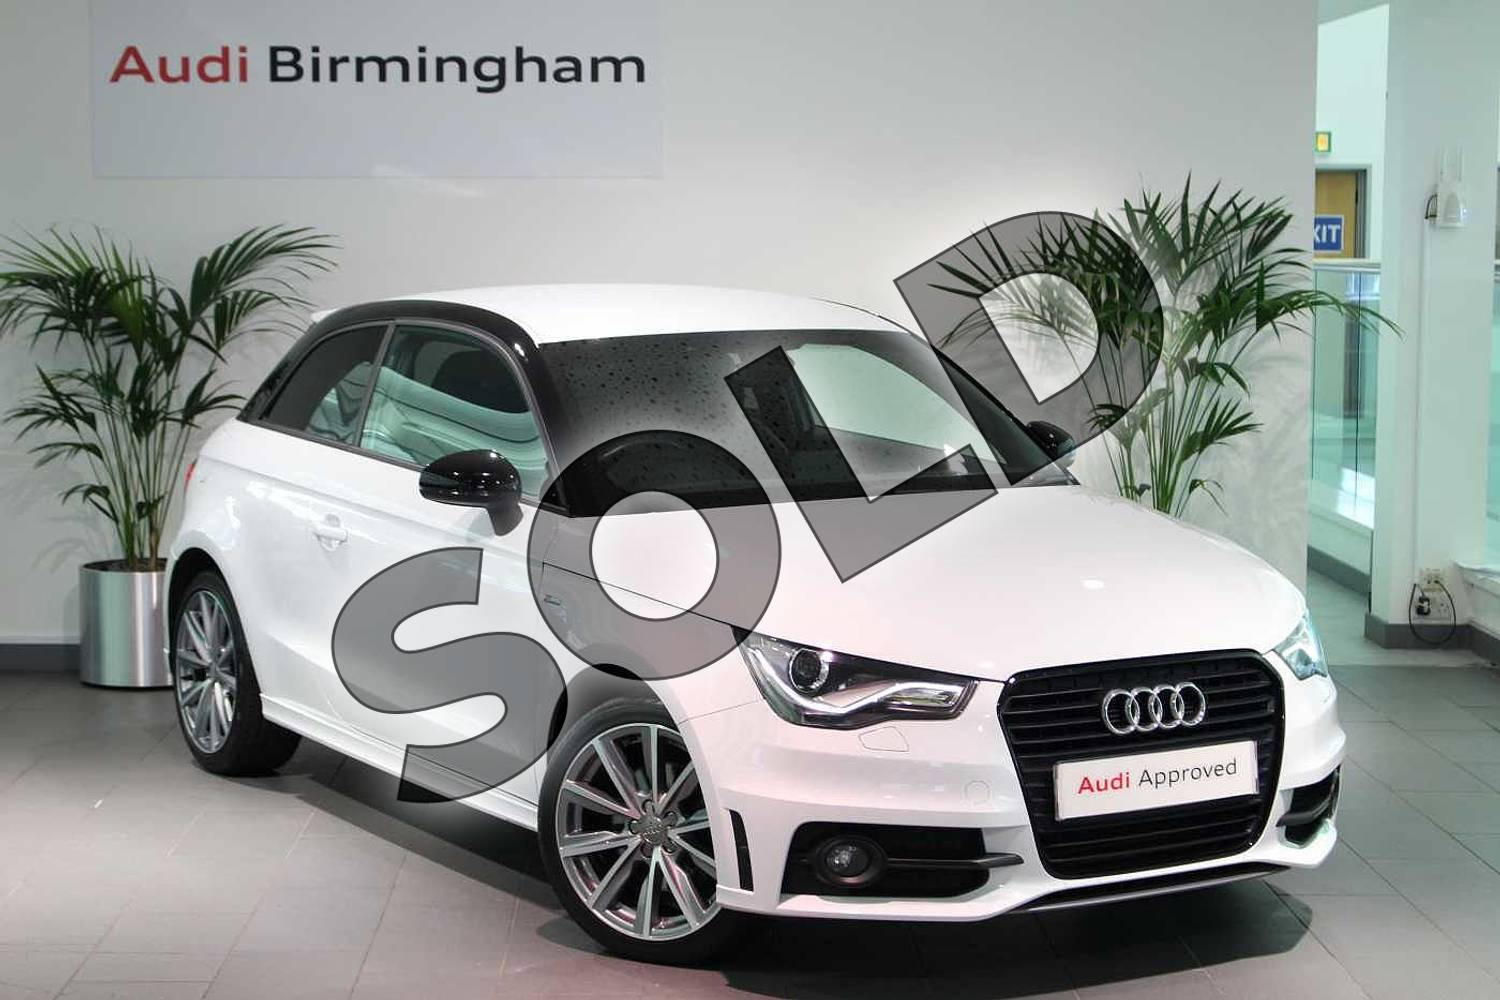 2015 Audi A1 Hatchback Special Editions 1.6 TDI S Line Style Edition 3dr in Glacier White, metallic at Birmingham Audi